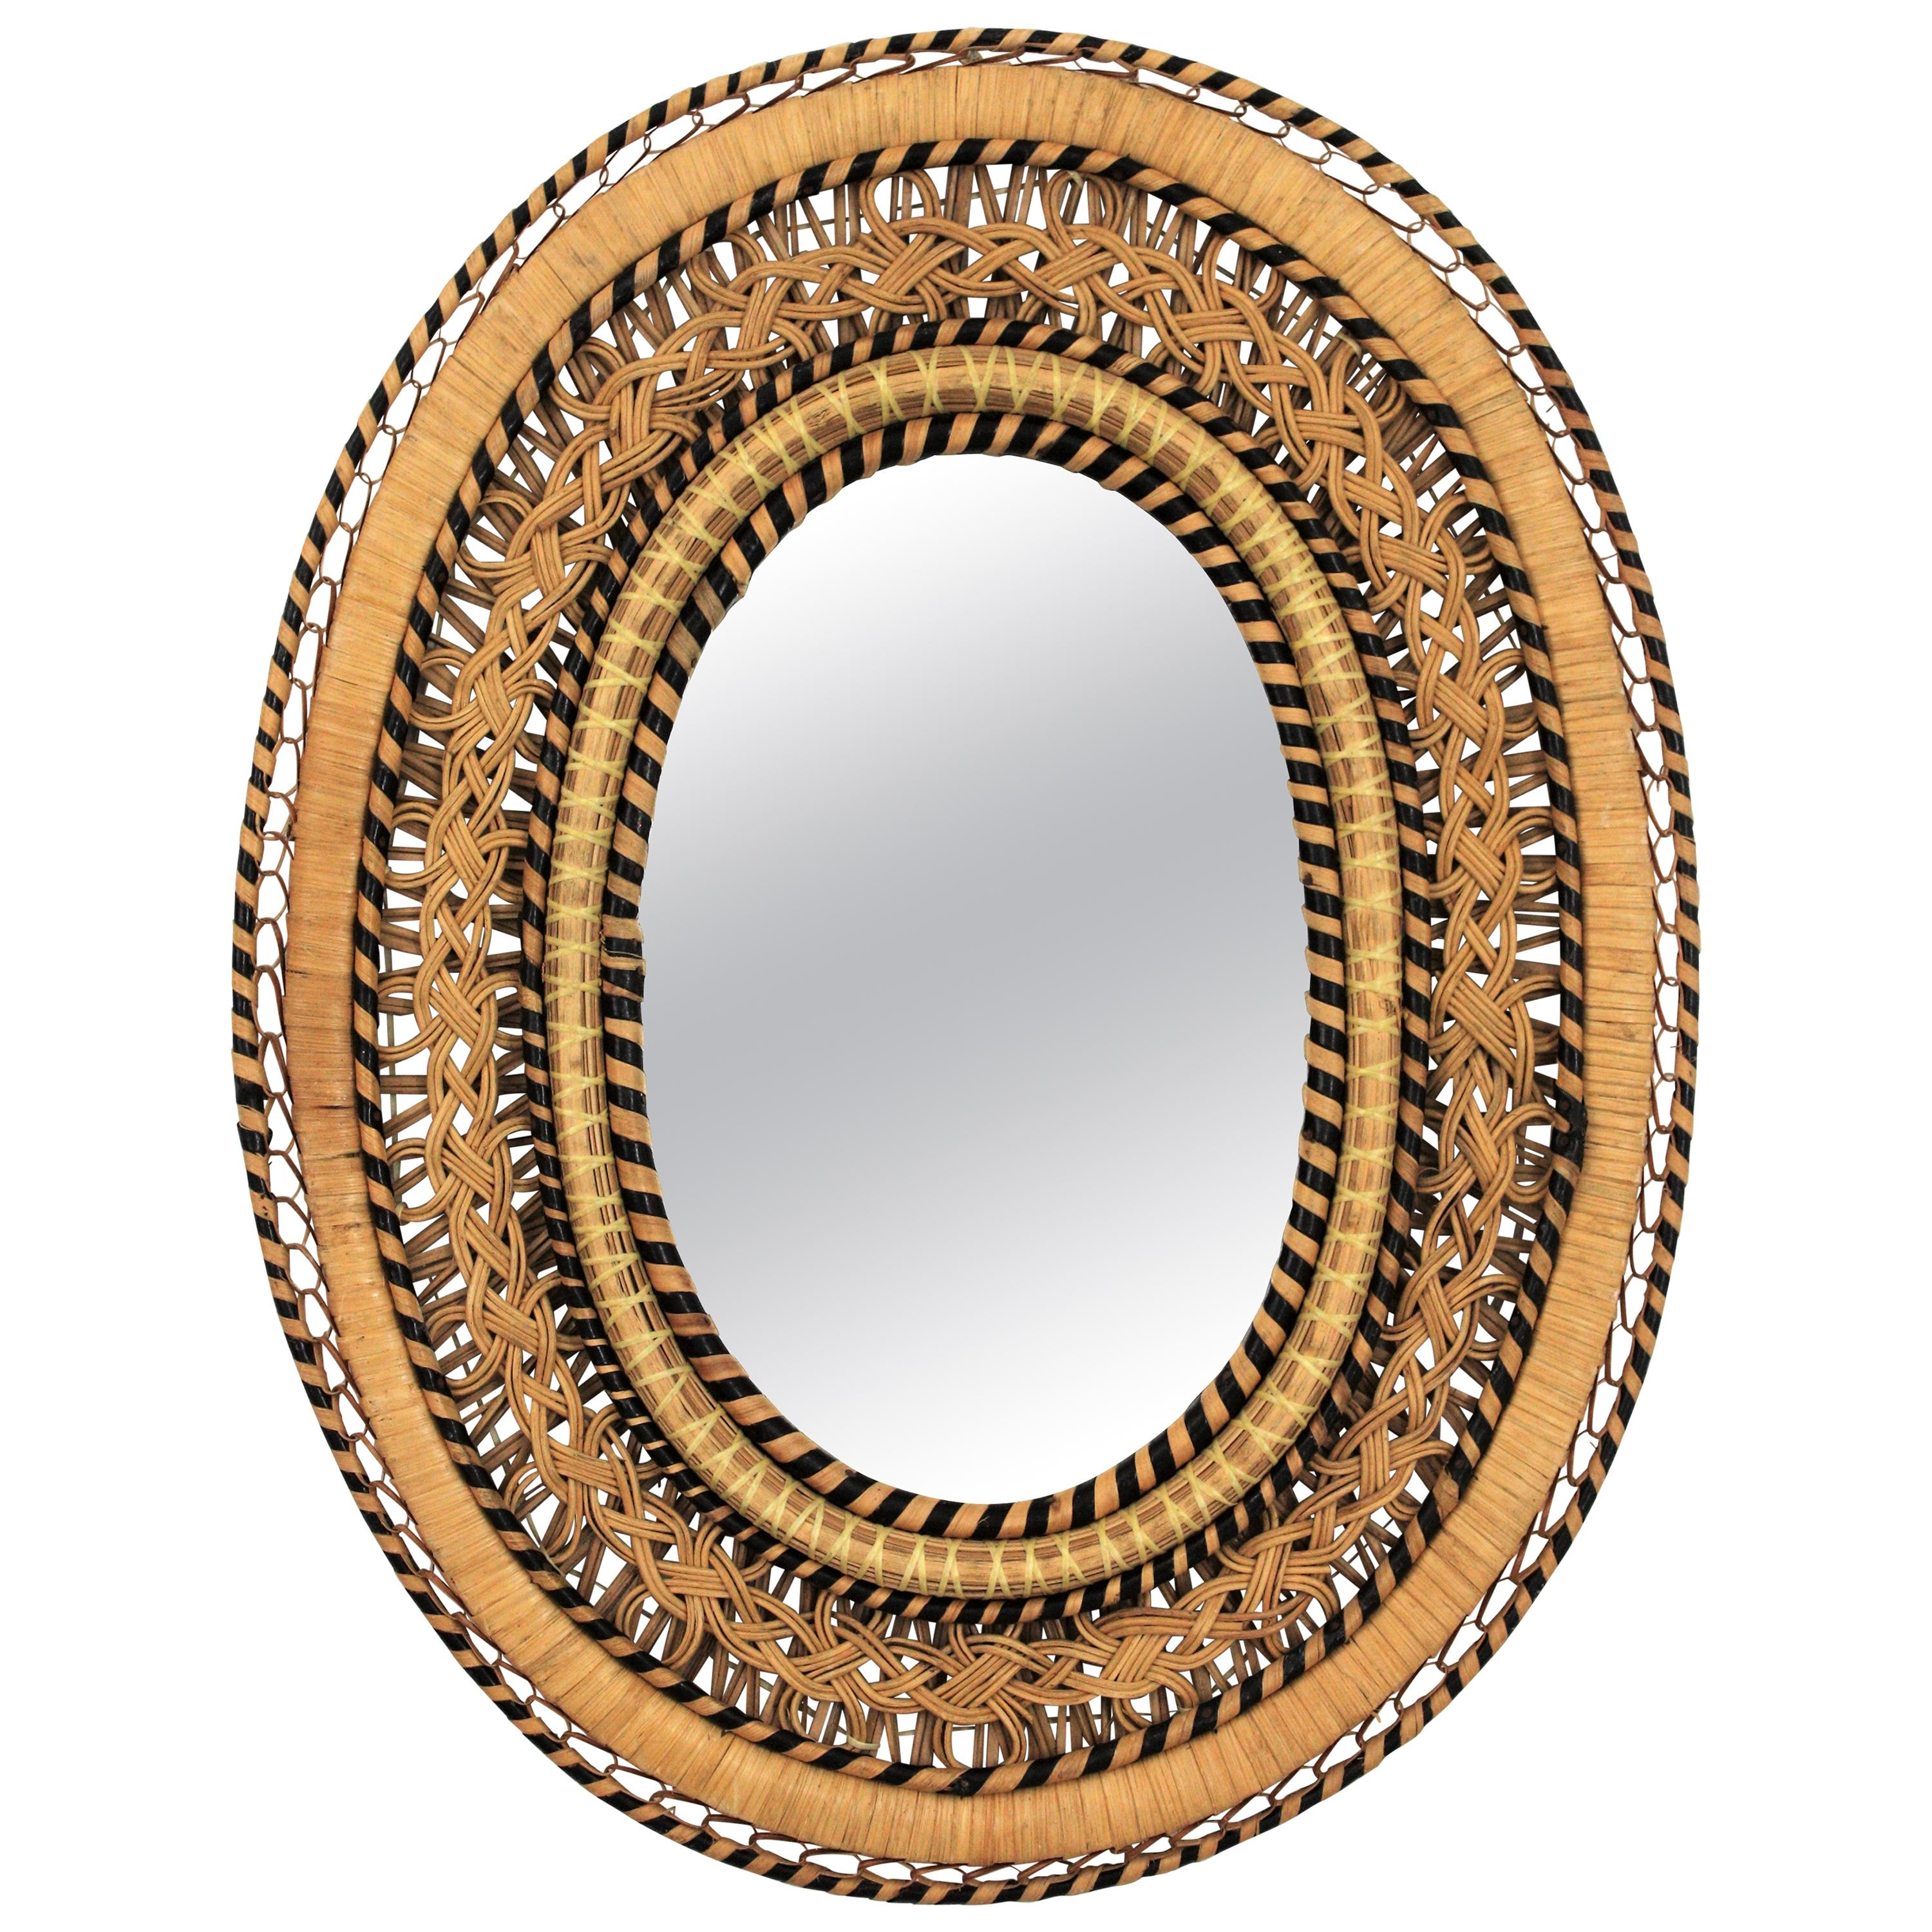 Rattan and Wicker Braided Emmanuelle Peacock Oval Mirror, 1970s